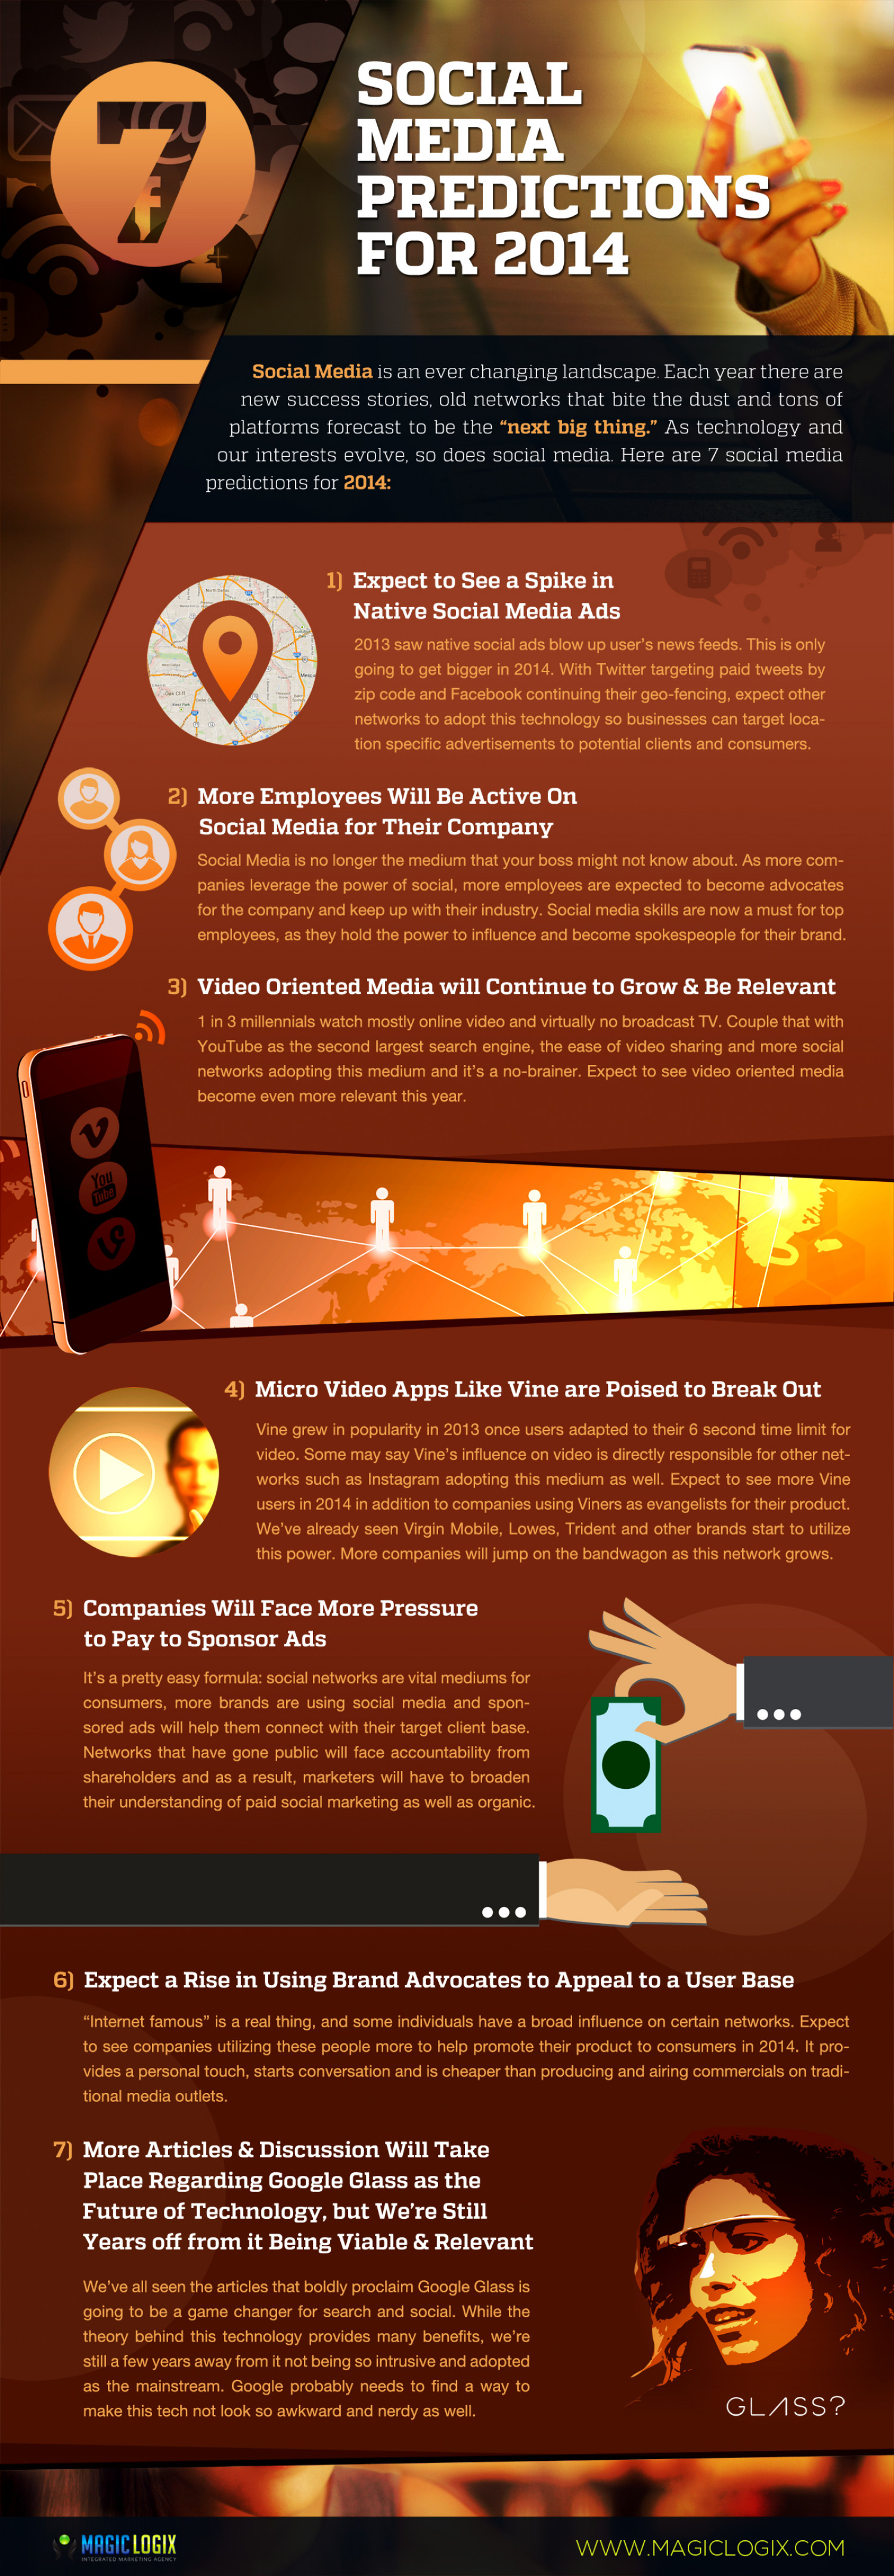 7 Social Media Predictions for 2014 Infographic